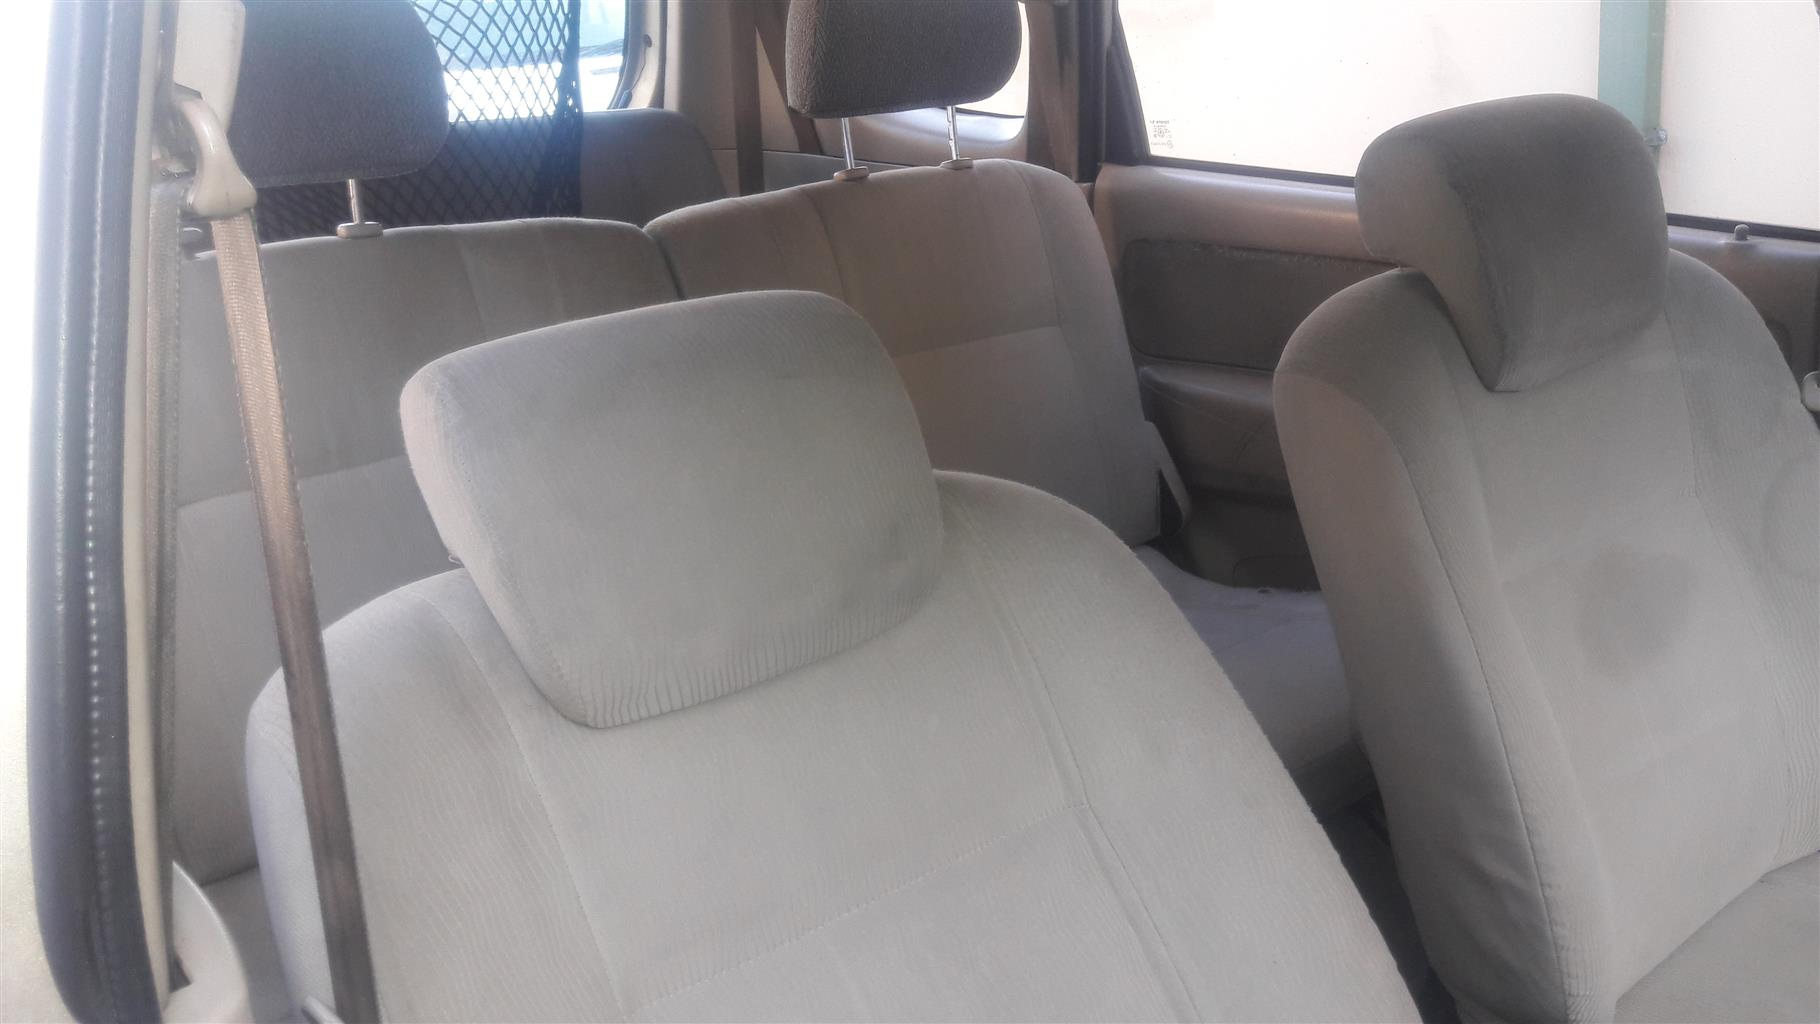 2007 Toyota Avanza Buy Used Second Hand Prices Classifieds In